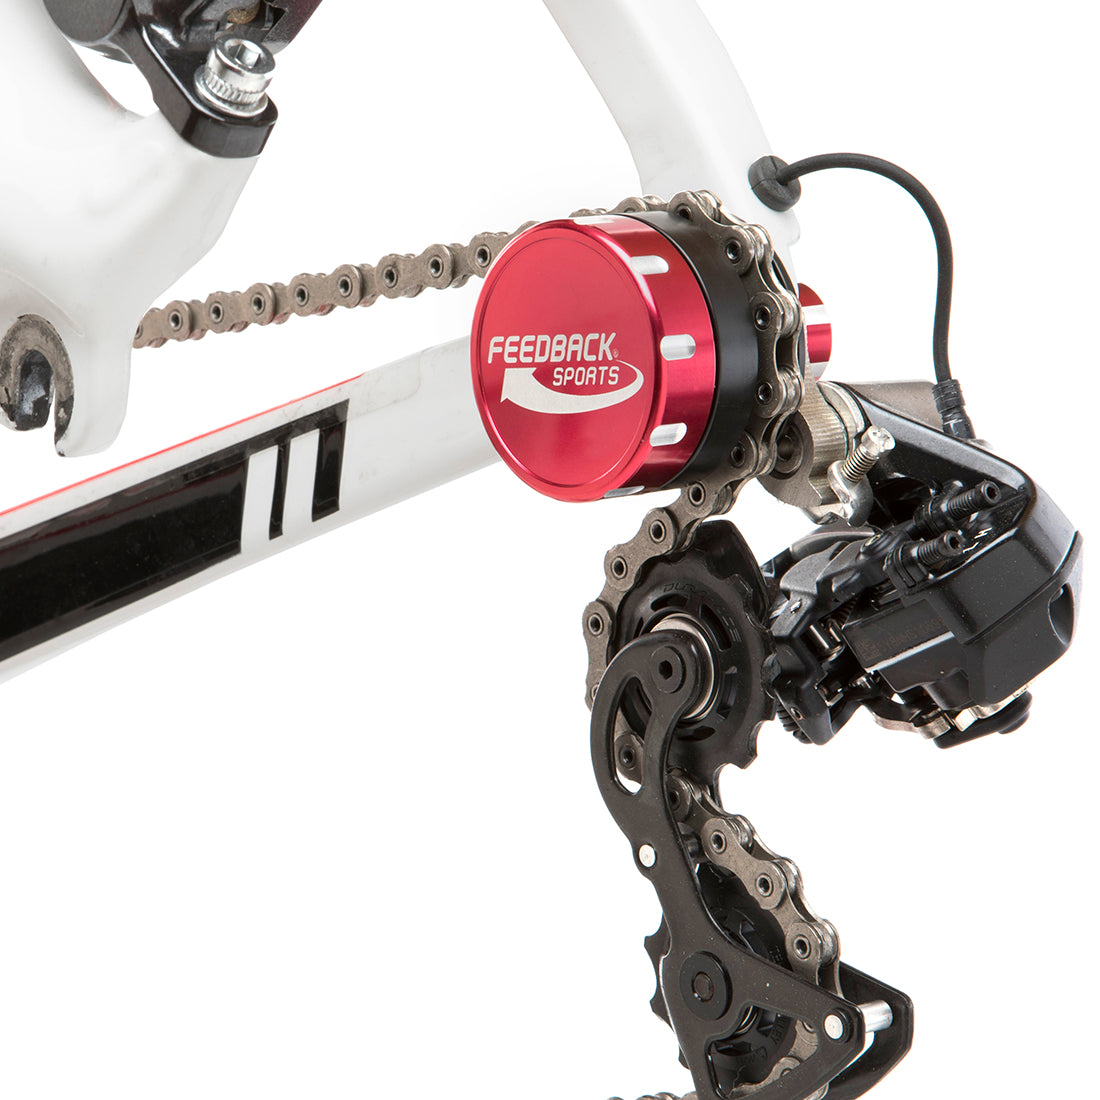 Feedback Sports Chain Keeper Tool - RideCX cyclocross store